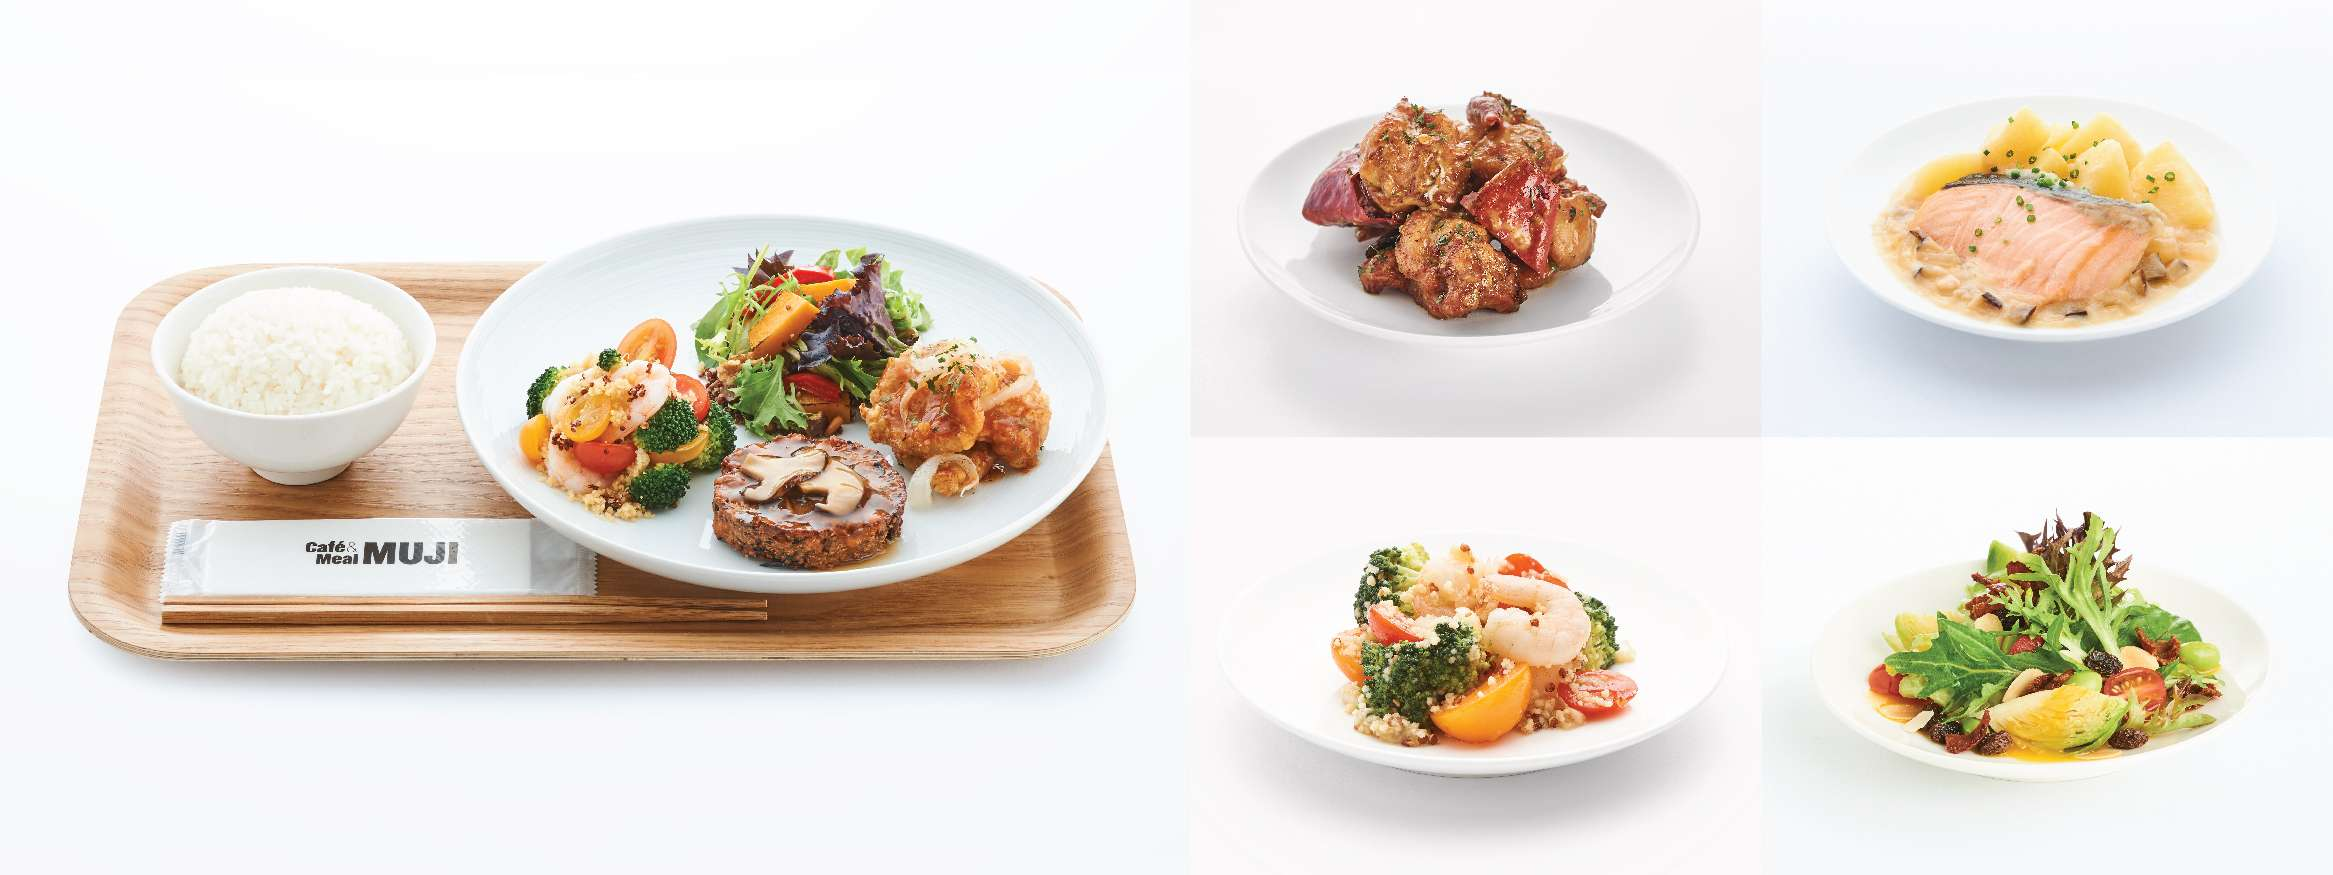 Cafe&Meal MUJI - 4 Deli Meal